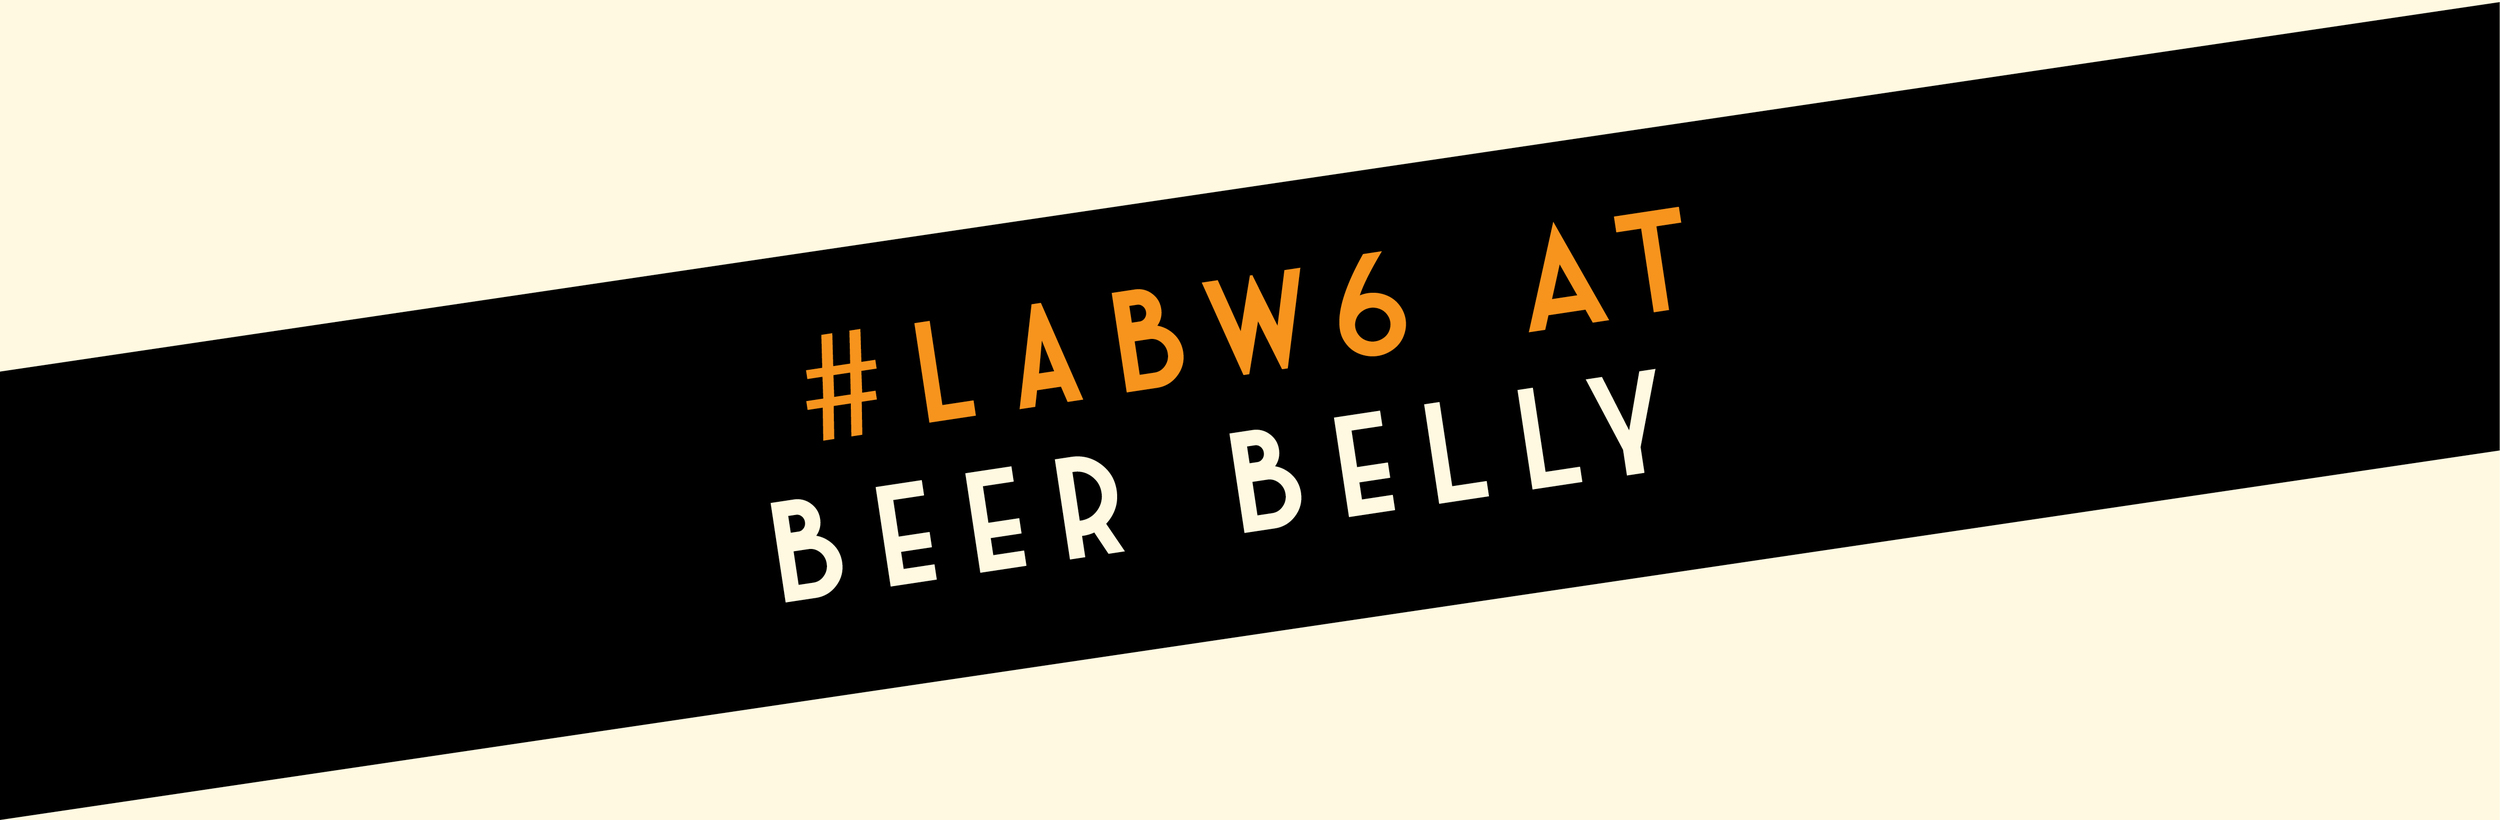 LA-BEER-WEEK-6-BEER-BELLY